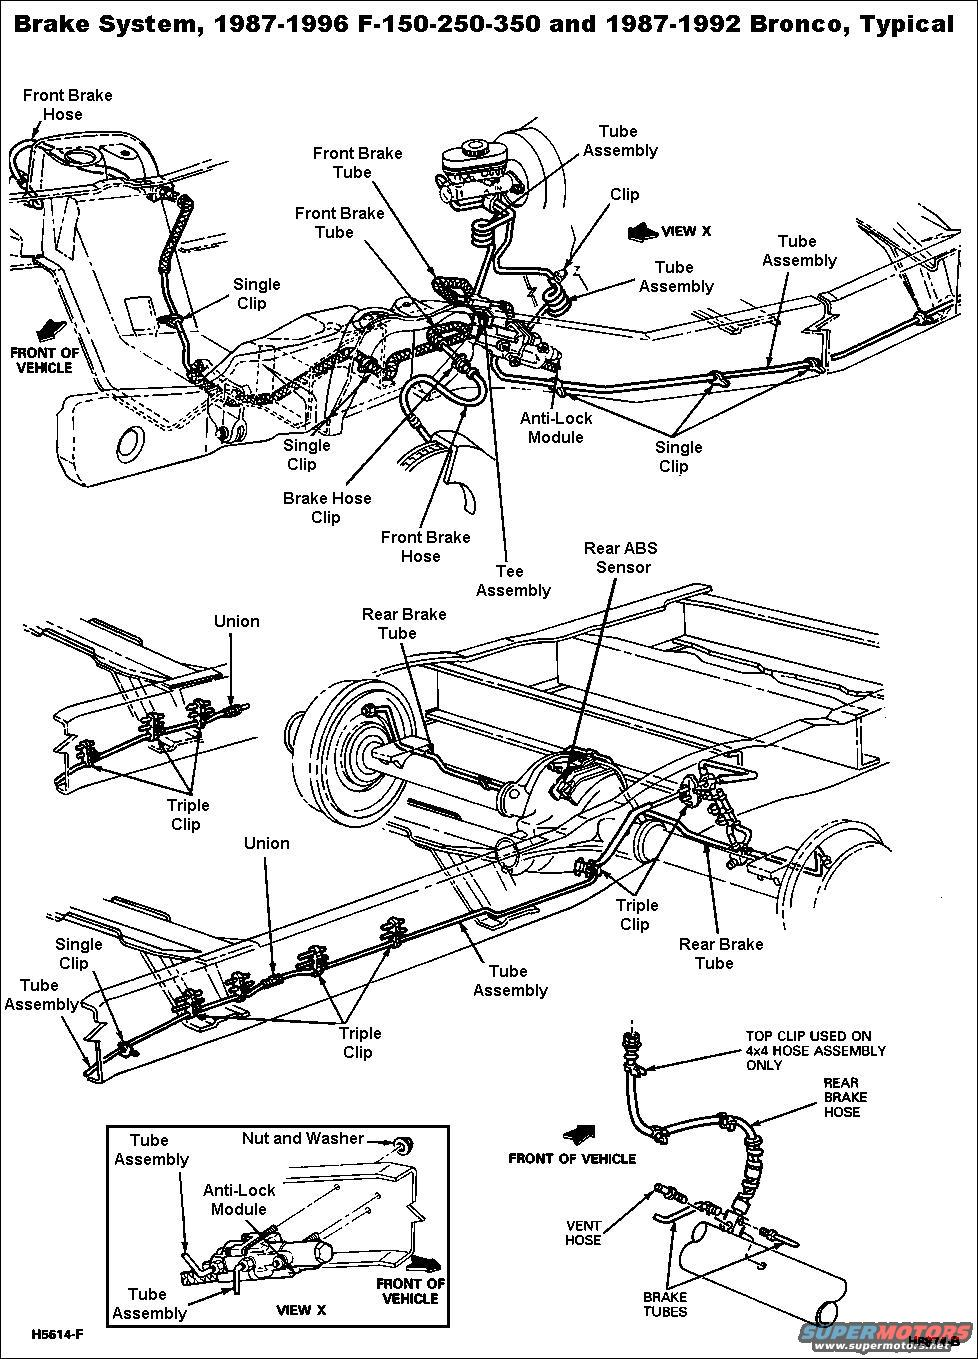 T9628331 Change moreover 7evgv 89 Ford Bronco Yhat Fuel Pump Will Not Run besides Page 9 additionally T6810180 Need vacuum line diagram 1985 s 10 besides 1997 Buick Lesabre Fuel Pump Location. on 94 s10 fuel tank